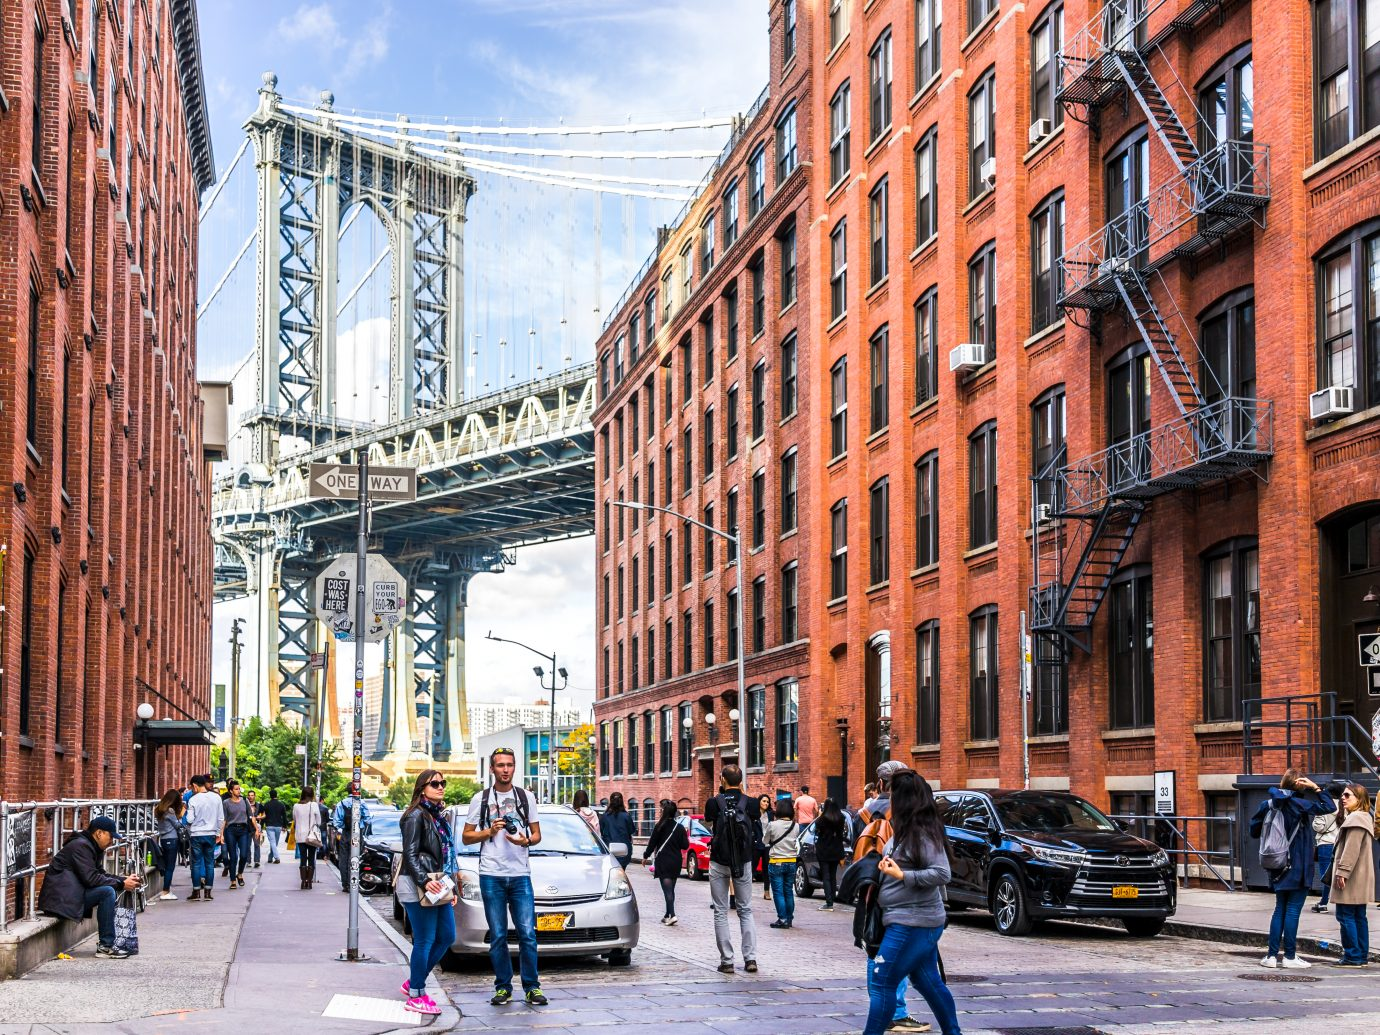 Brooklyn: View of under Manhattan Bridge in Dumbo outside exterior outdoors in NYC New York City,